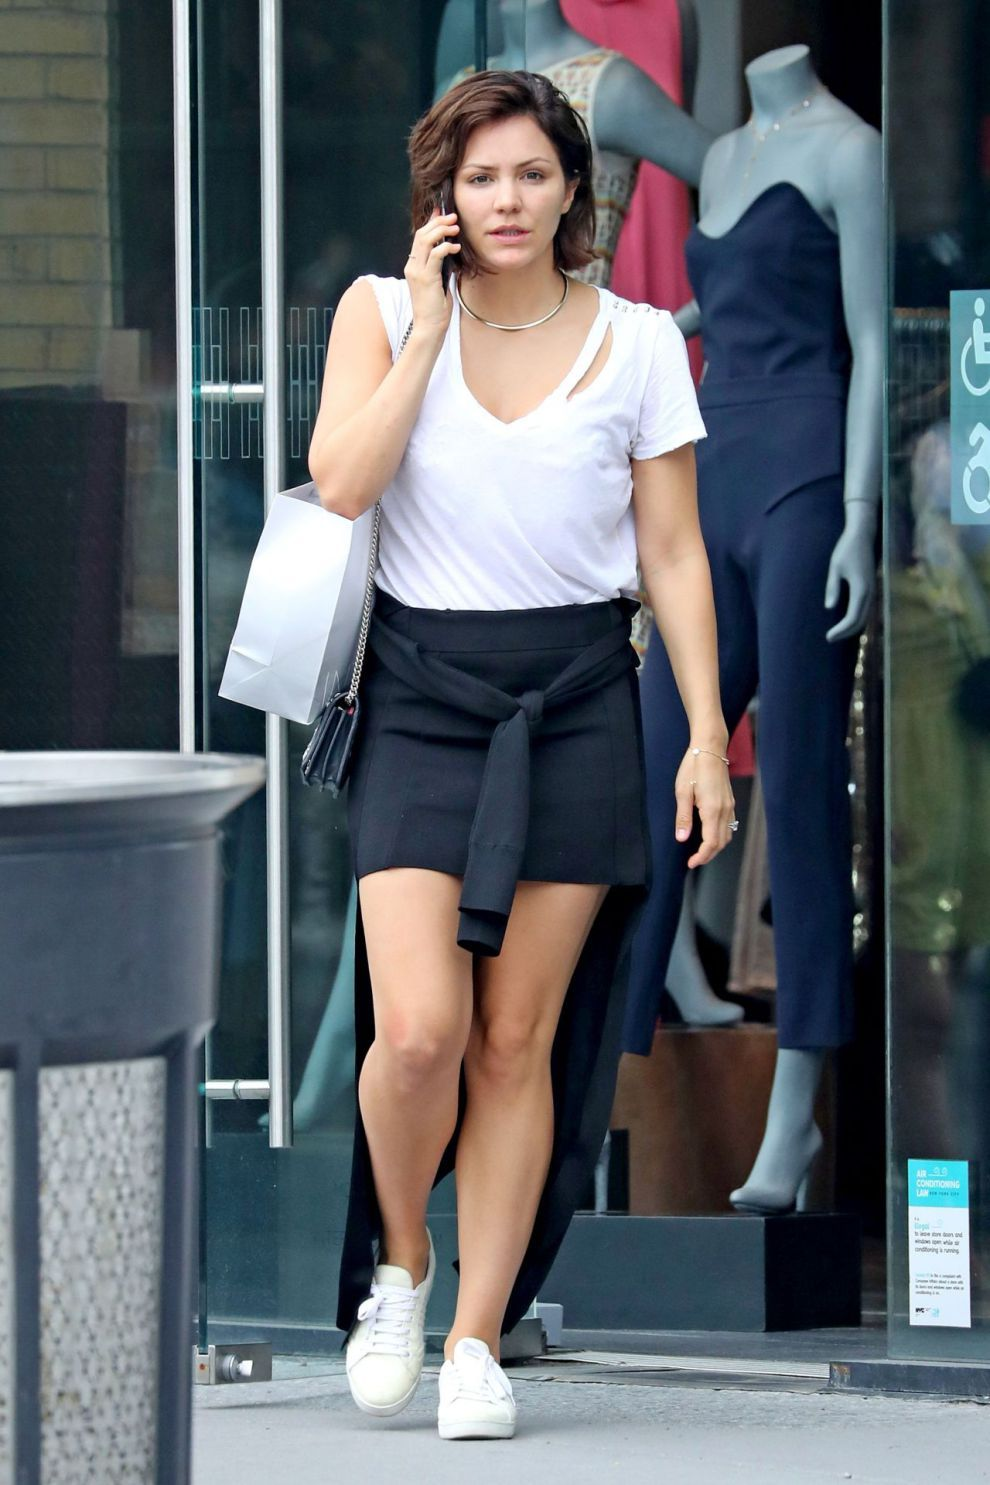 Katharine mcphee leggy in mini skirt outside fred segal in west hollywood - 2019 year